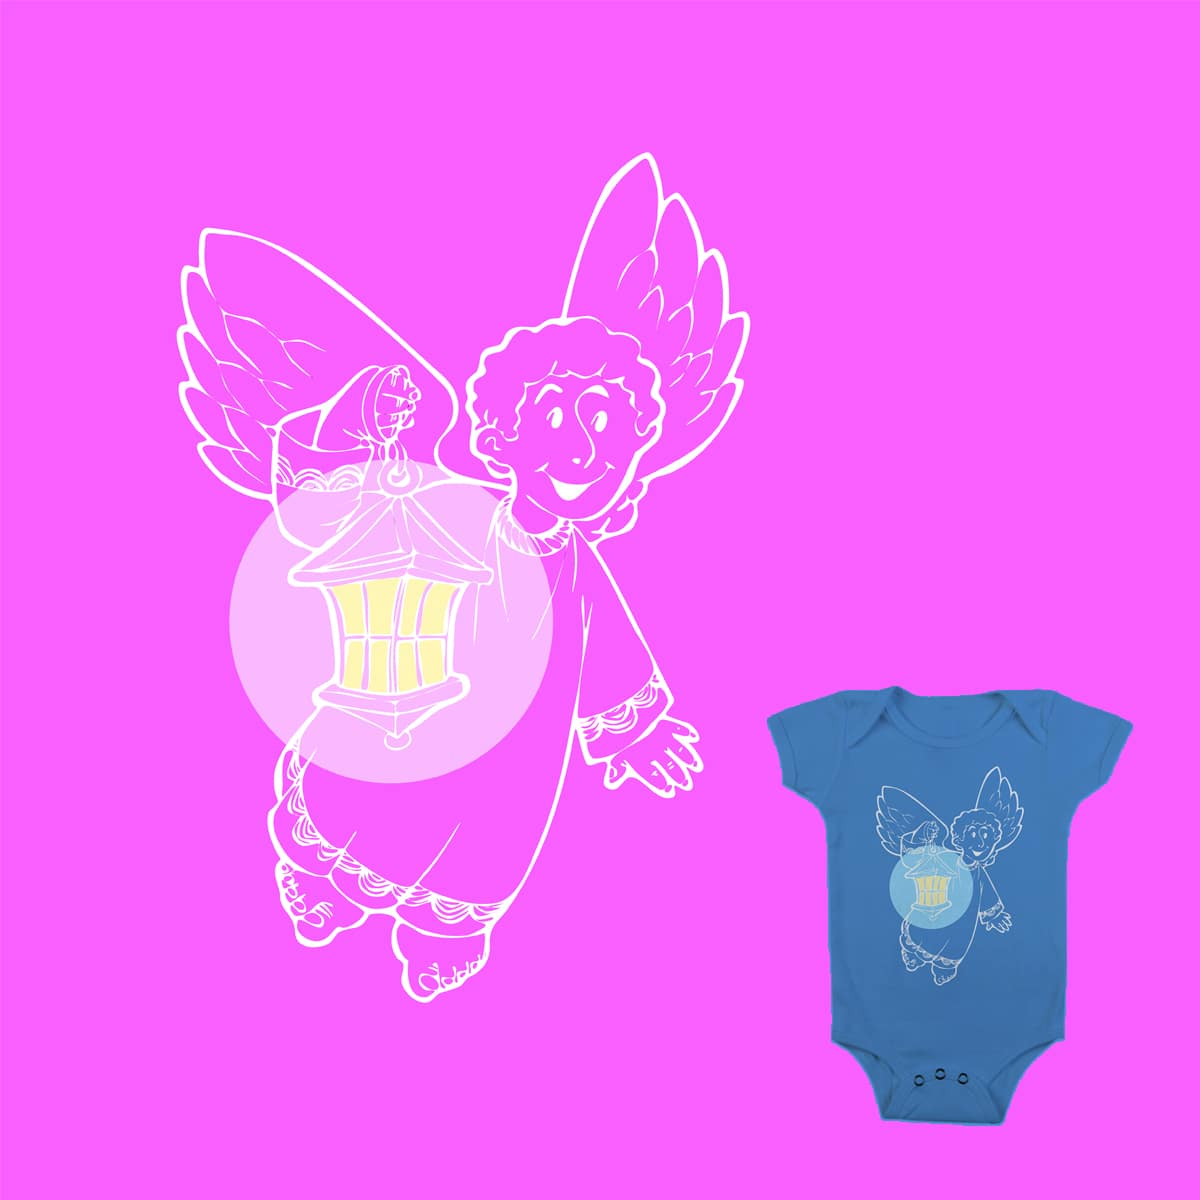 I BELIEVE IN ANGELS by stjepan on Threadless